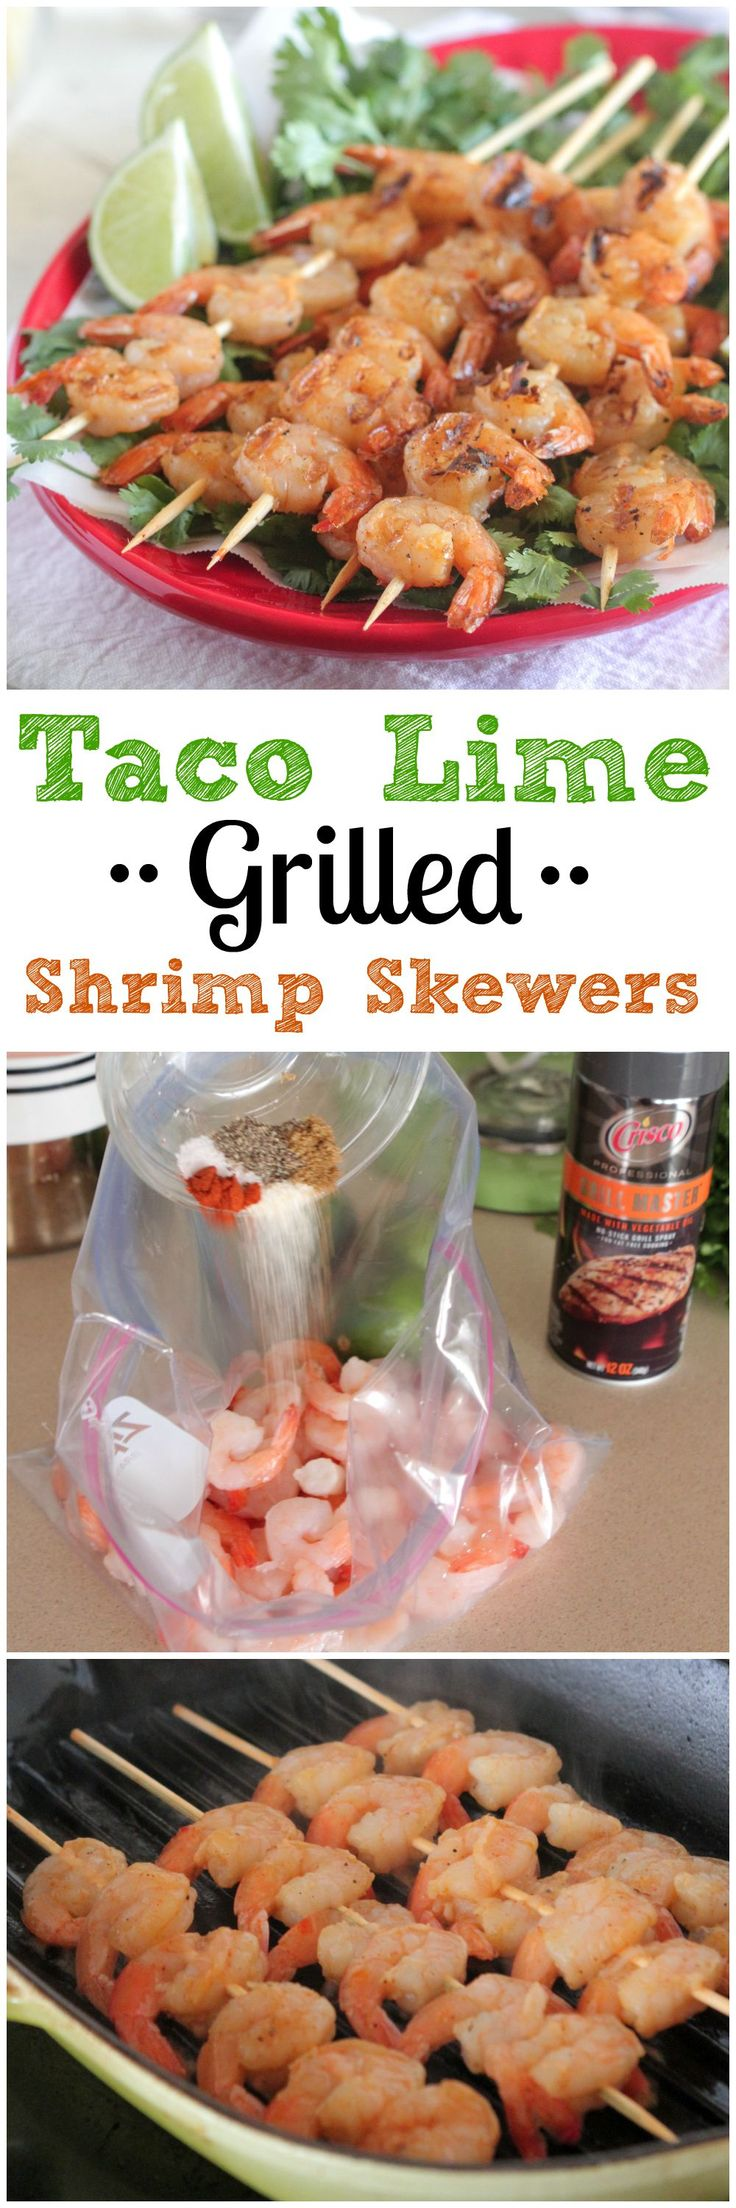 Taco Lime Grilled Shrimp Skewers.  Simple and tasty recipe done in minutes! #spon #shrimp #recipe